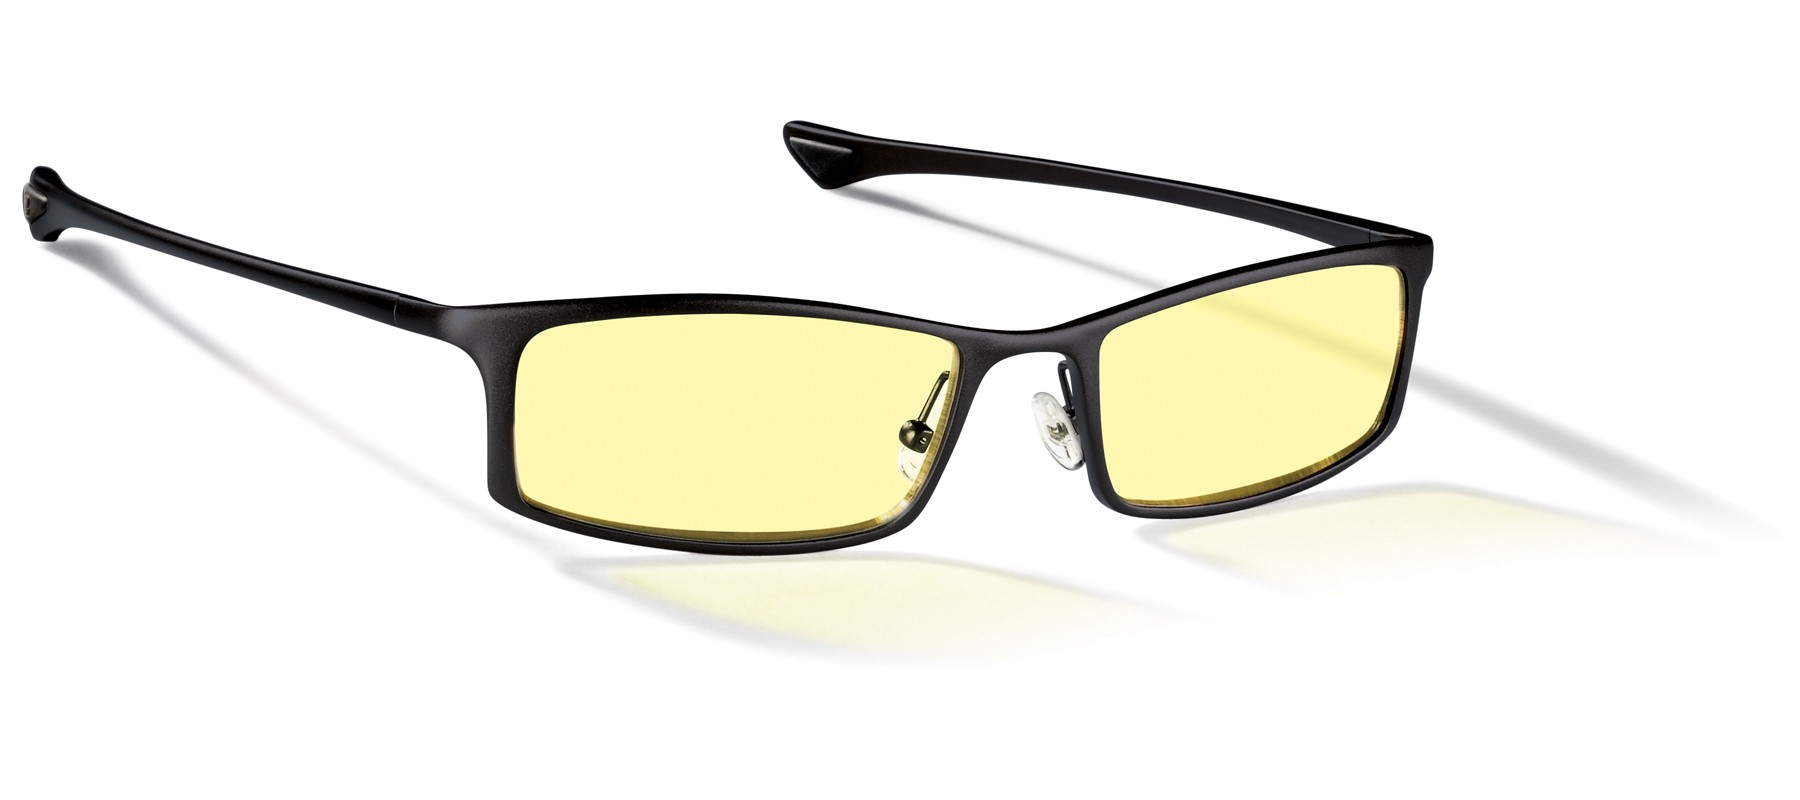 Очки для компьютера Gunnar Real Brand Technics 3791.000